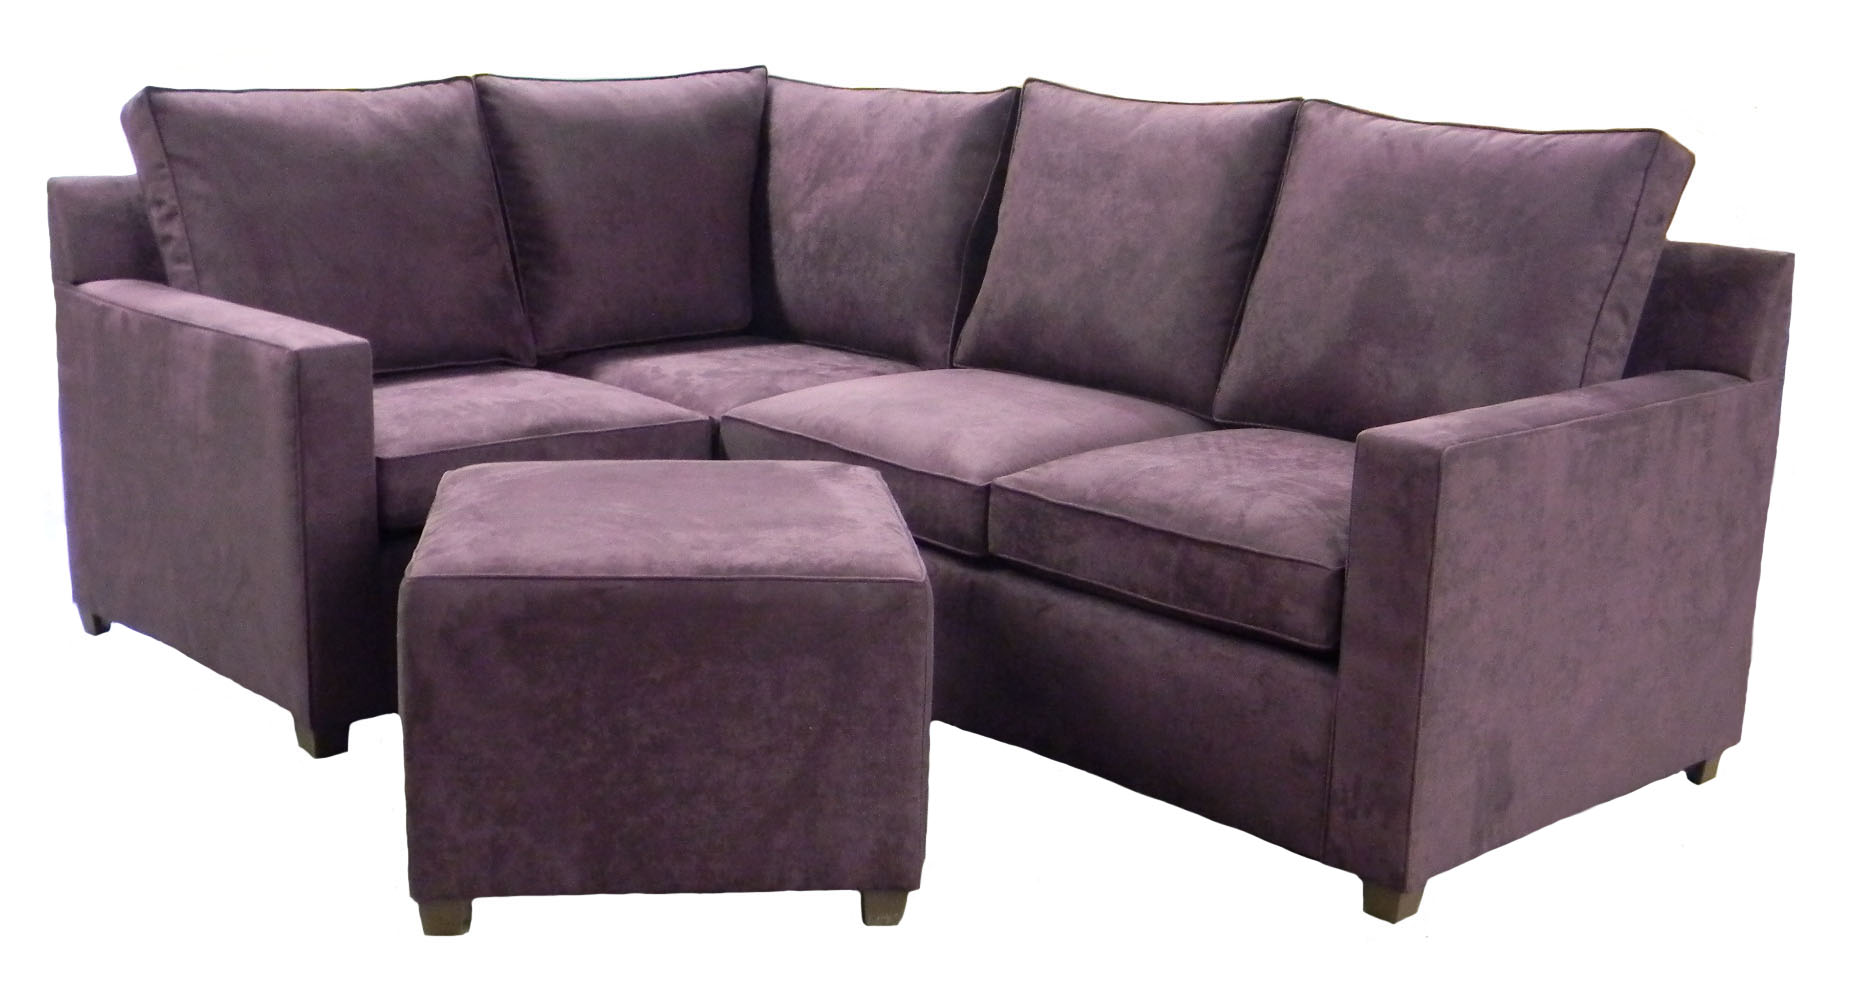 Sofa Foam Leeds Photos Examples Custom Sectional Sofas Carolina Chair Furniture